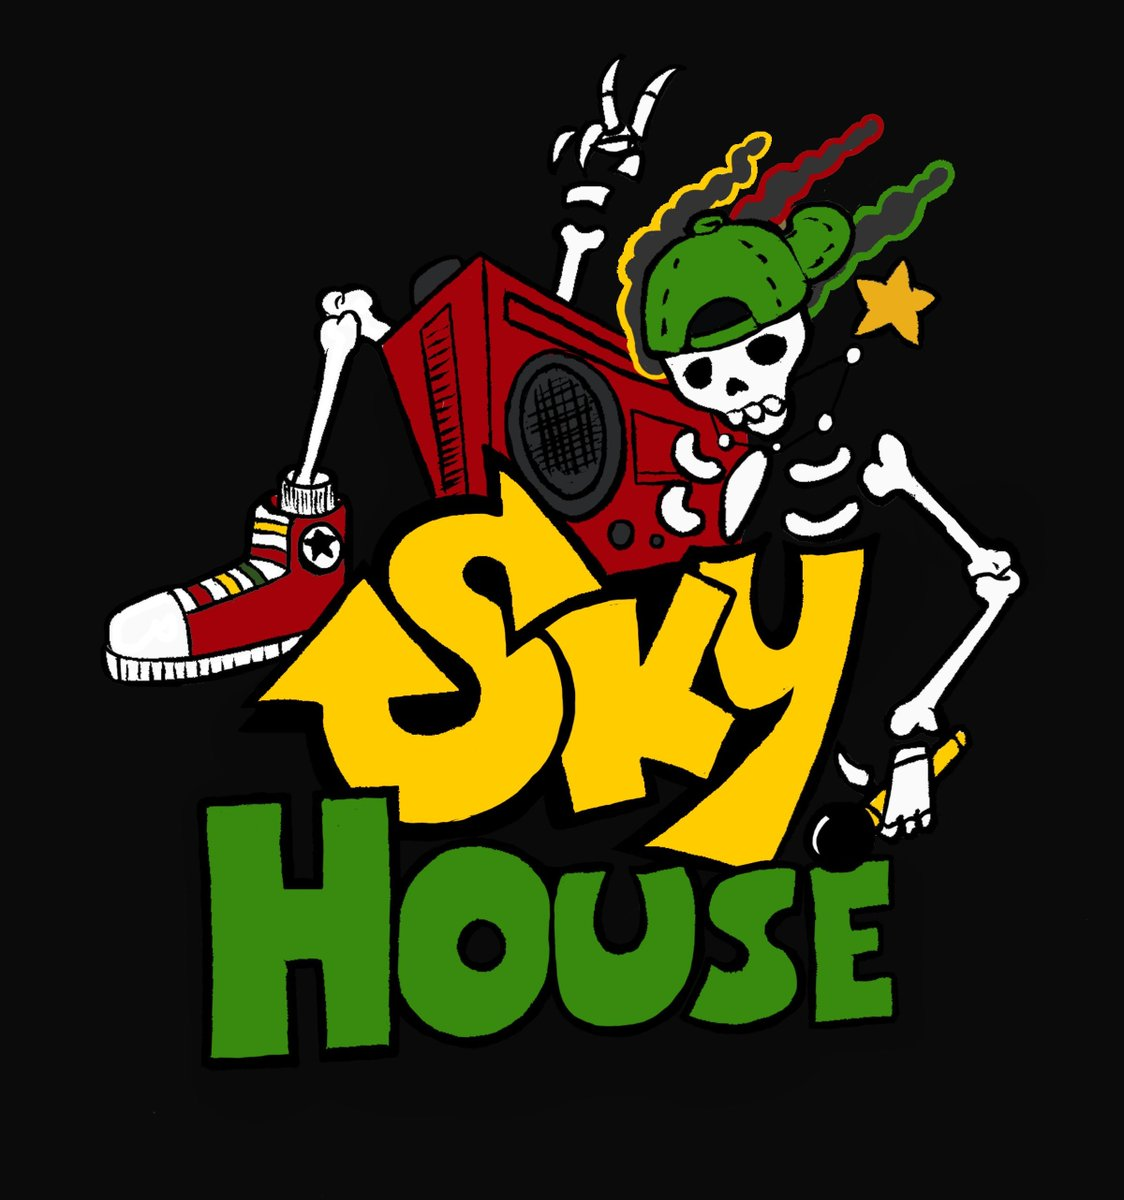 Skyhouse Music BEATS: R&B with an alternative twist and DIY indie inspiration. Hip-Hop. Pop. Rock. R&B. Reggae. Acoustic. Dance/EDM/Electronic. Melted. Songs, Beats, Toplines, & more...  https://t.co/4k1Z4eYFSl #NewMusic #beats #SONGS #instrumentals #PeaceAndLove #rnb #hiphop https://t.co/UD1Nonmvx5